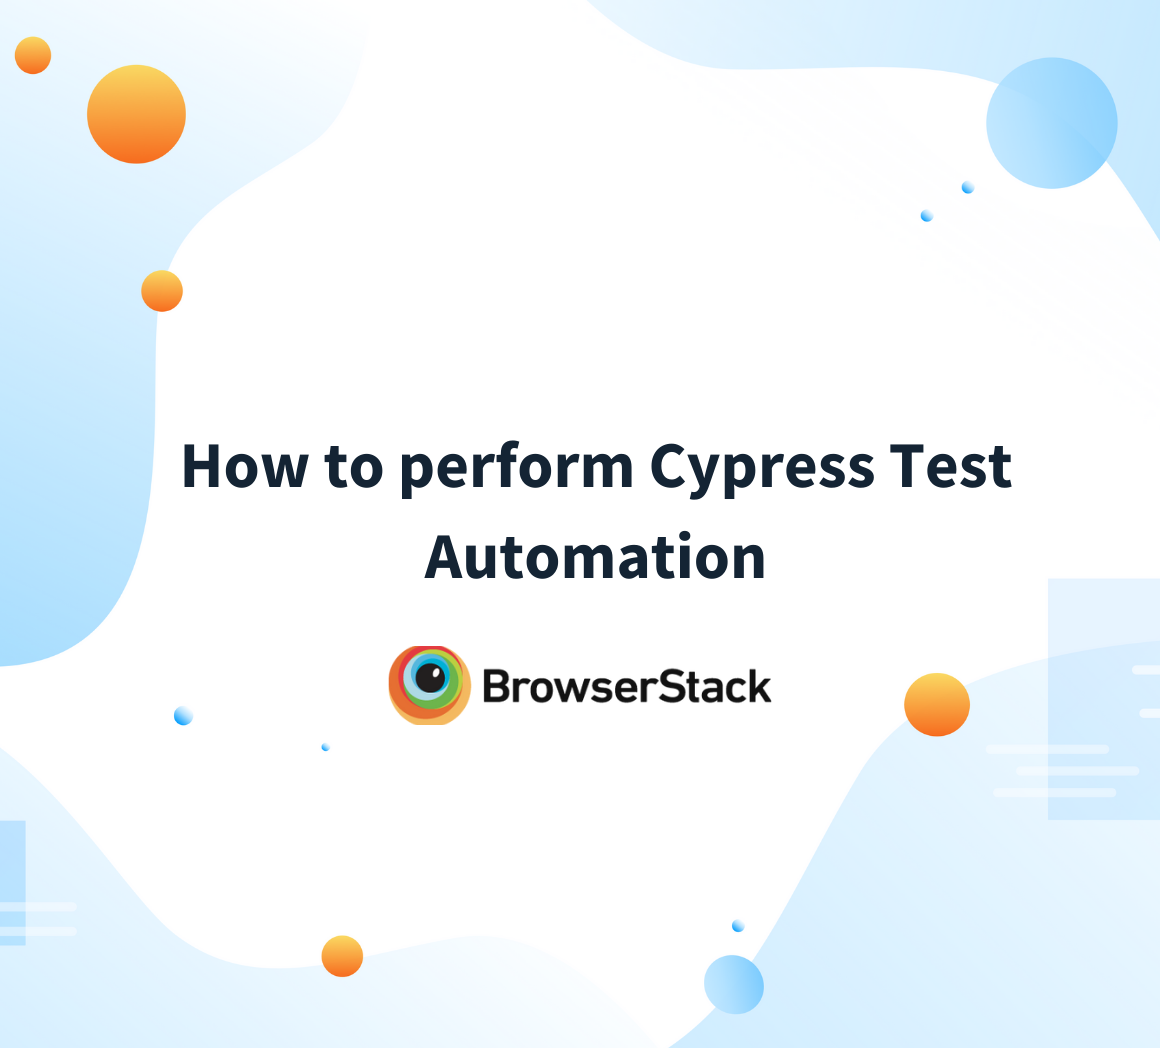 How to perform Cypress Test Automation